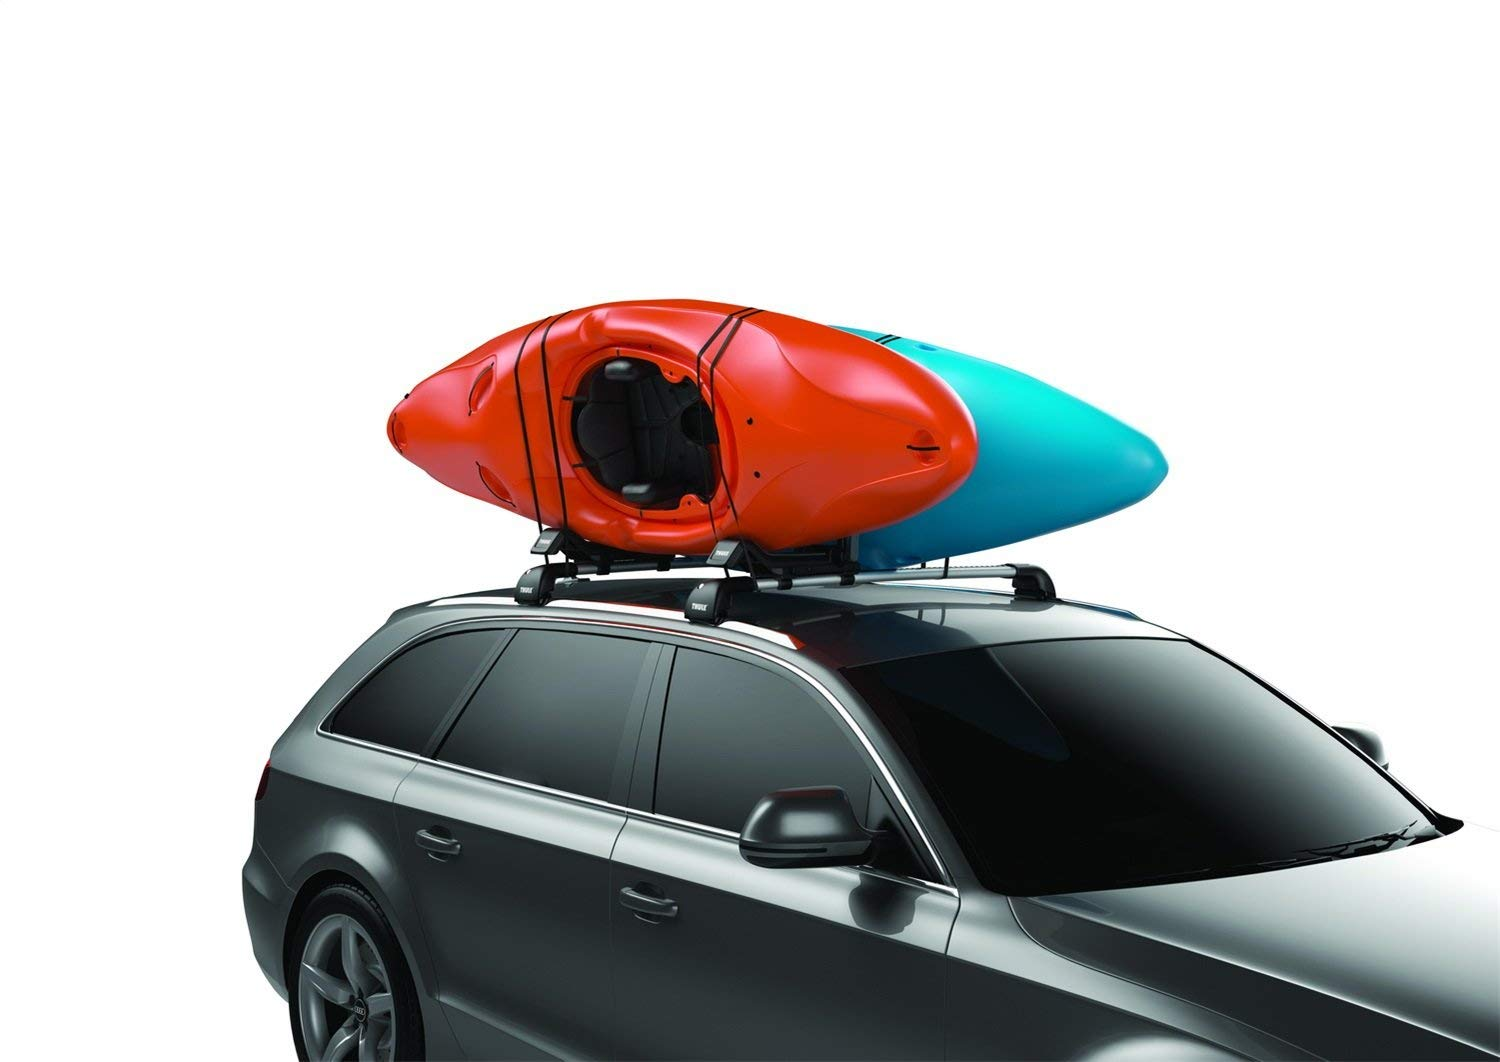 Thule Hull-a-Port XT Kayak Roof Rack